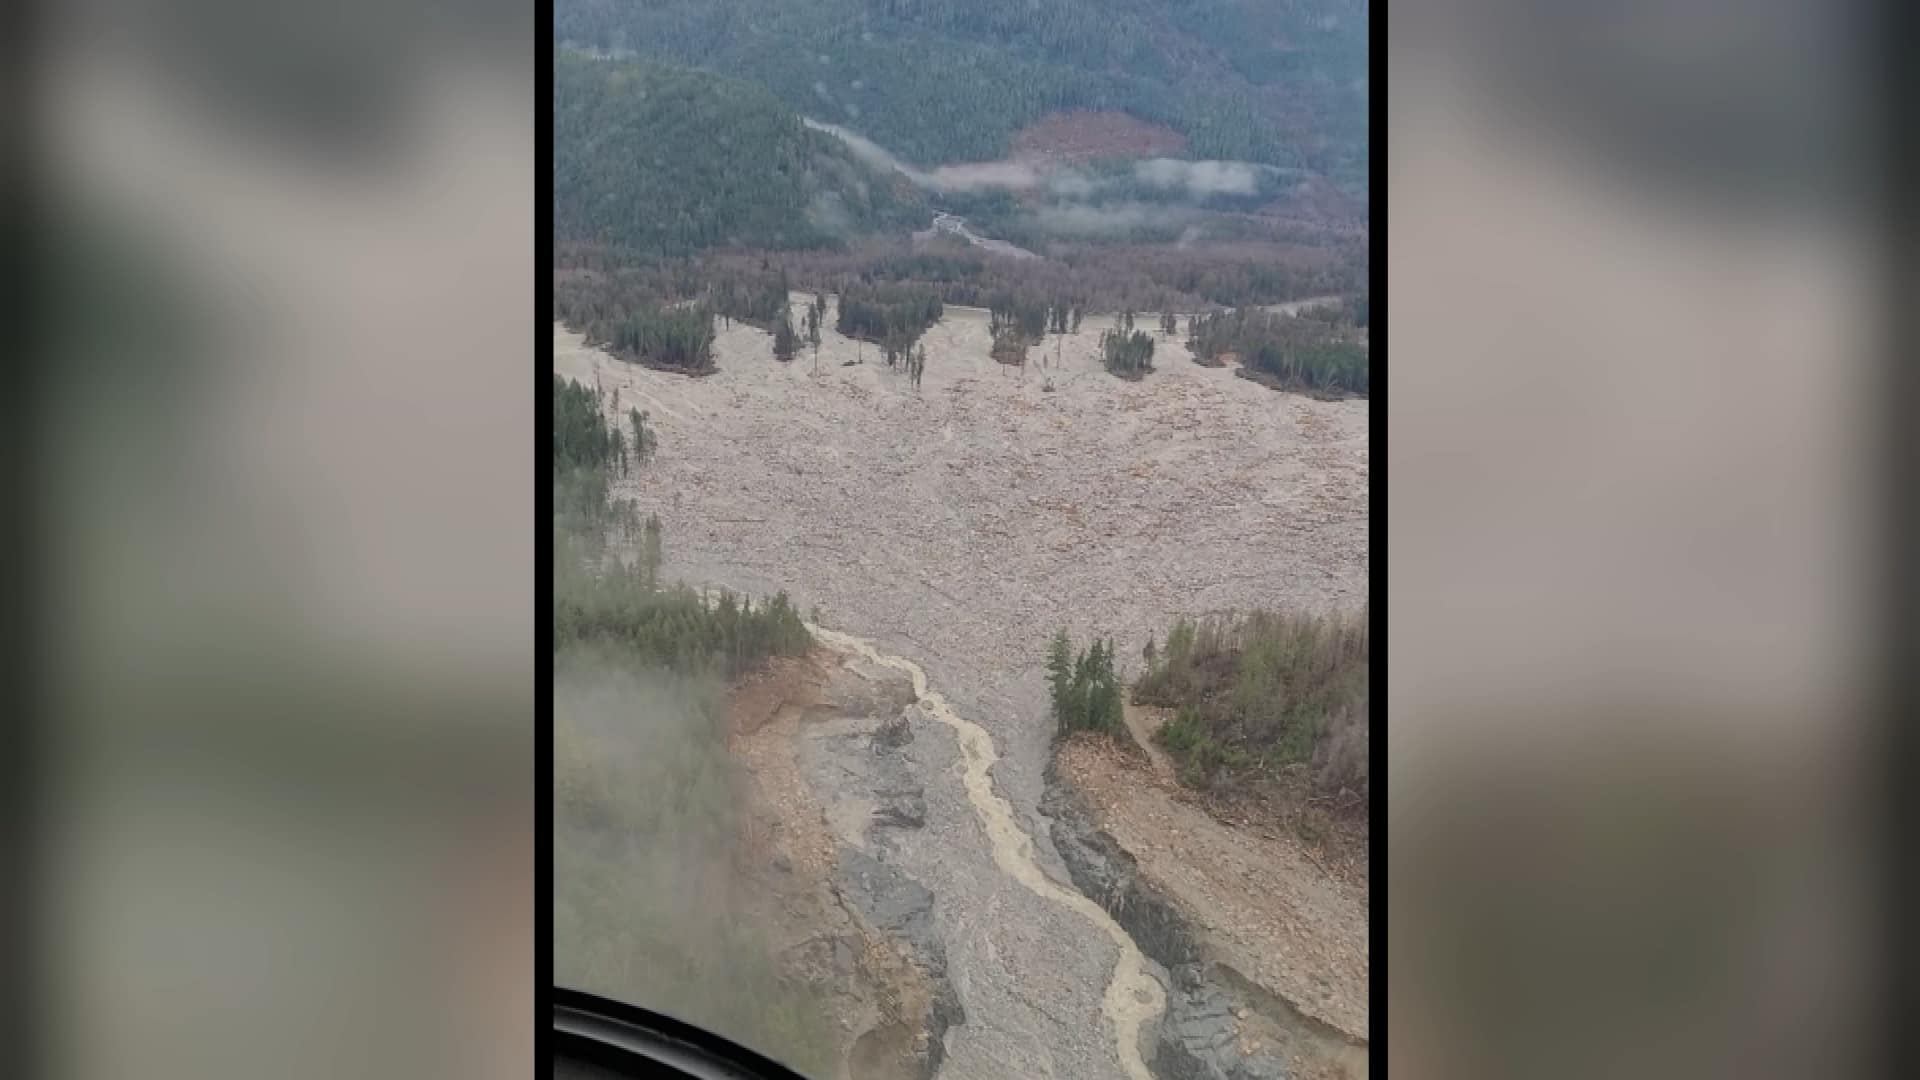 Researchers Hunt cause of Gigantic B.C. rockslide that Mimicked a Fresh Pond thumbnail